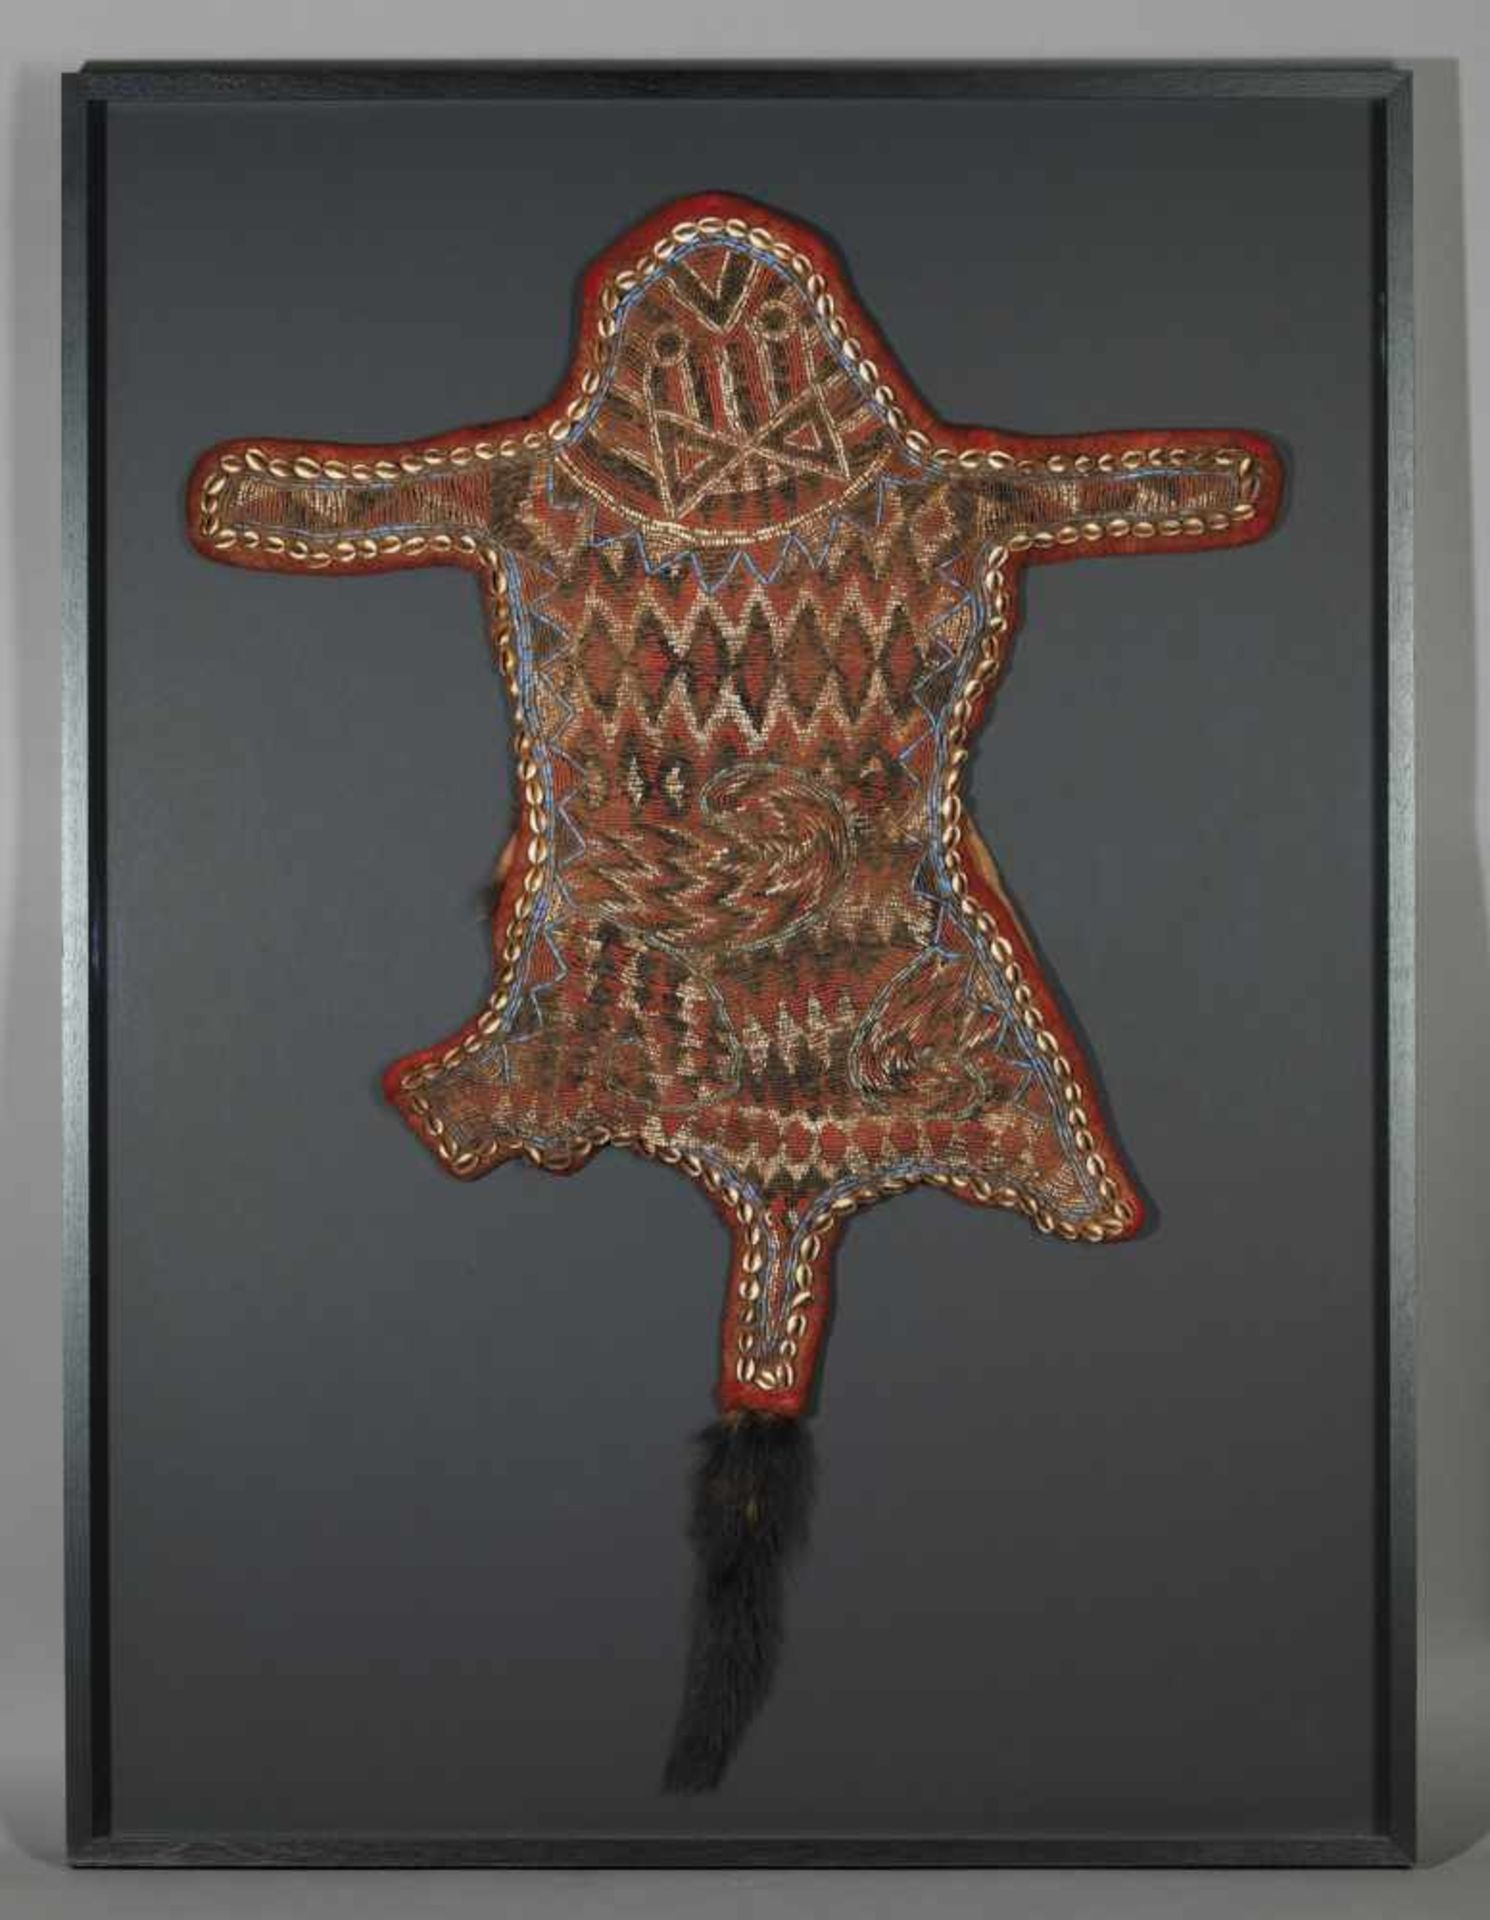 Beaded Ceremonial Dancing Cover For Queen Mother In Custom Made Frame - Tribal ArtThe skin, - Bild 3 aus 3